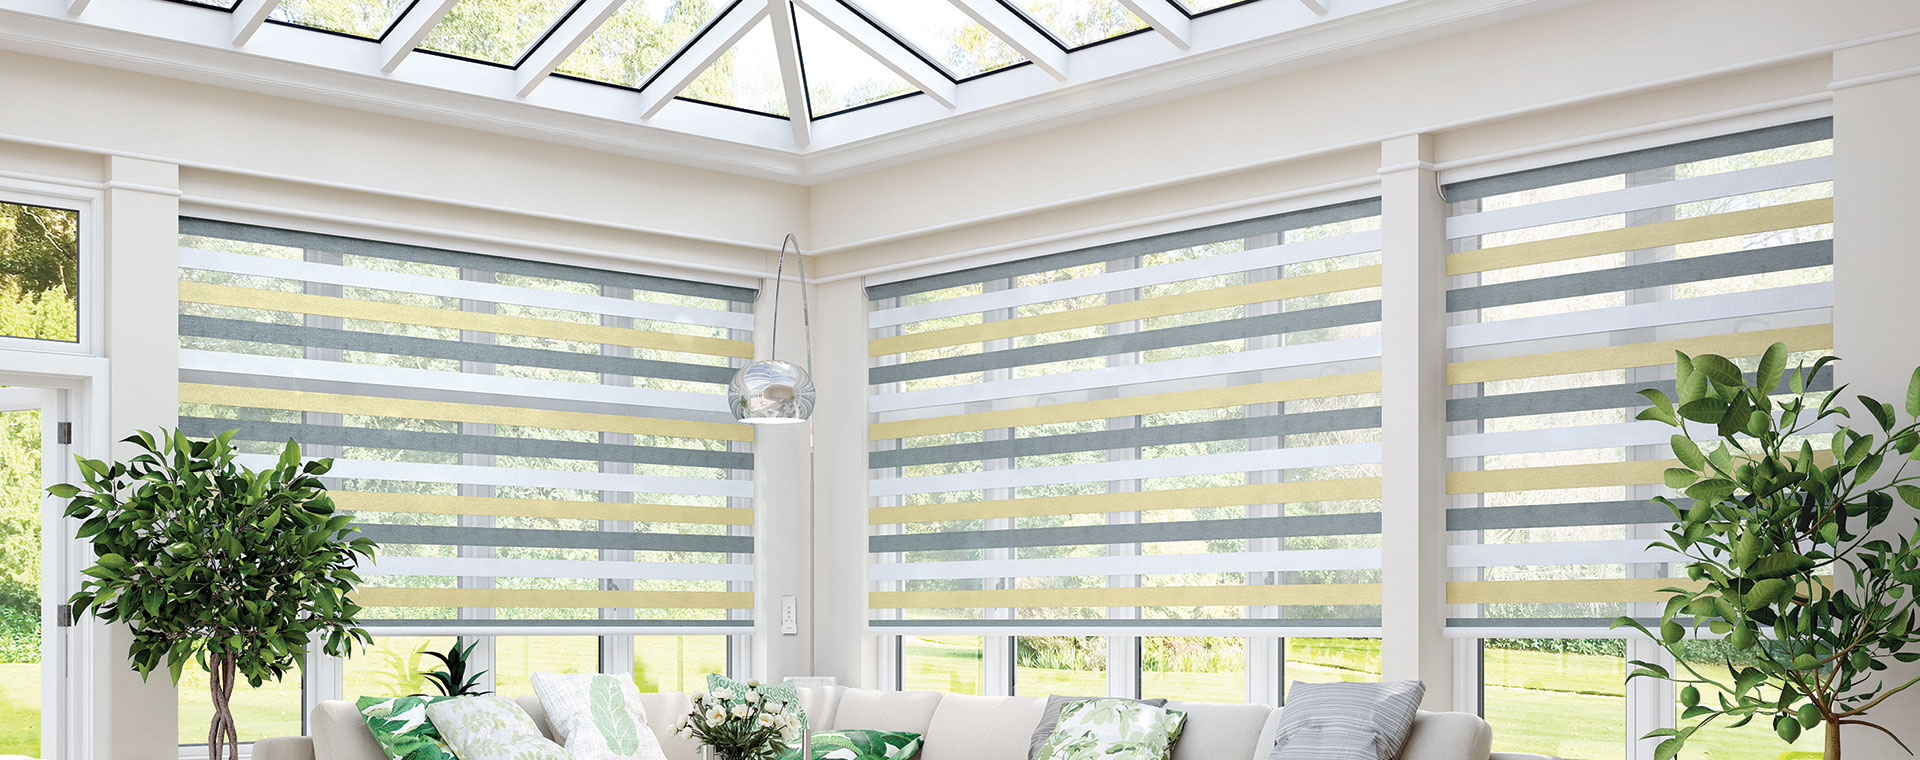 Conservatory Blinds Slide 1